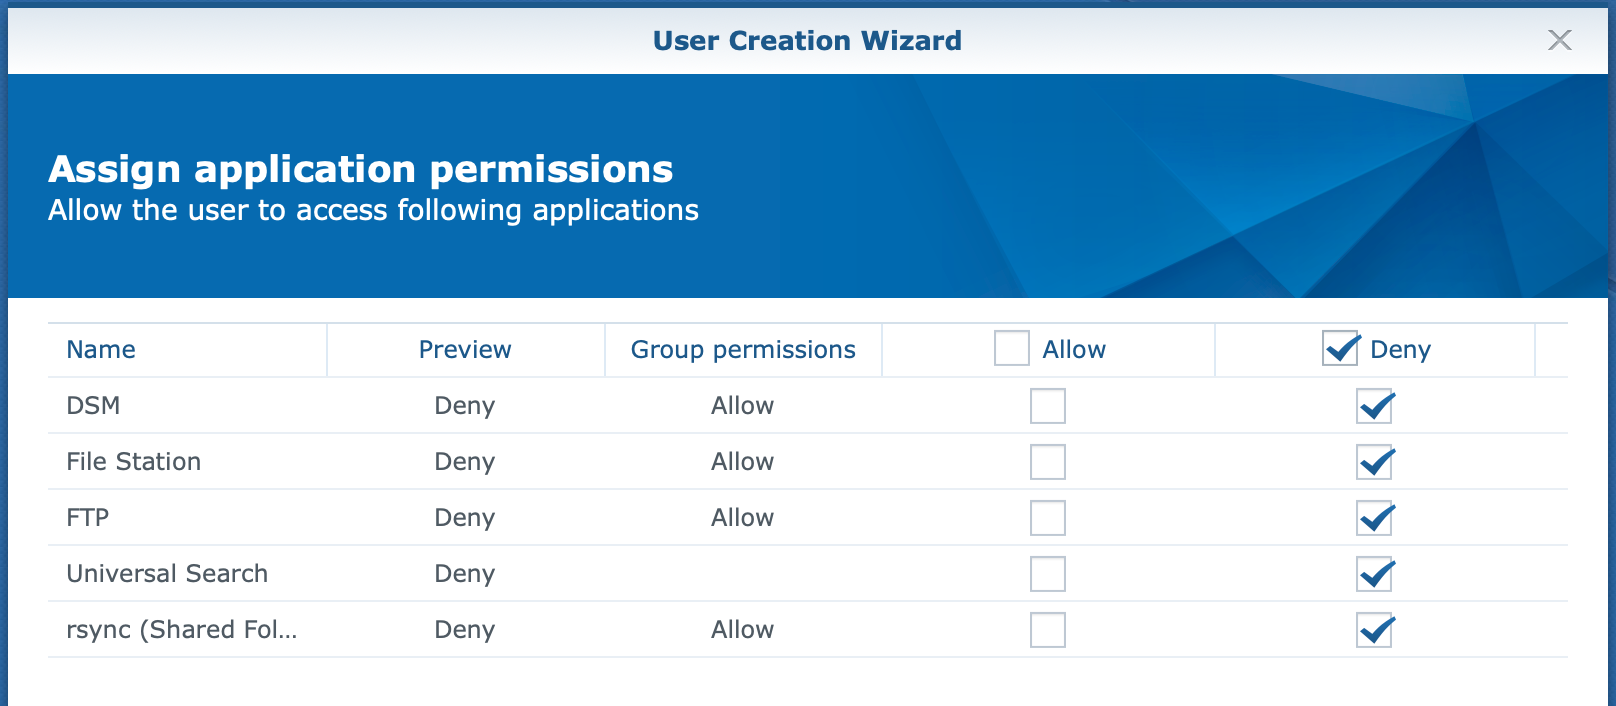 synology, user create wizard, assign application permissions, dsm6